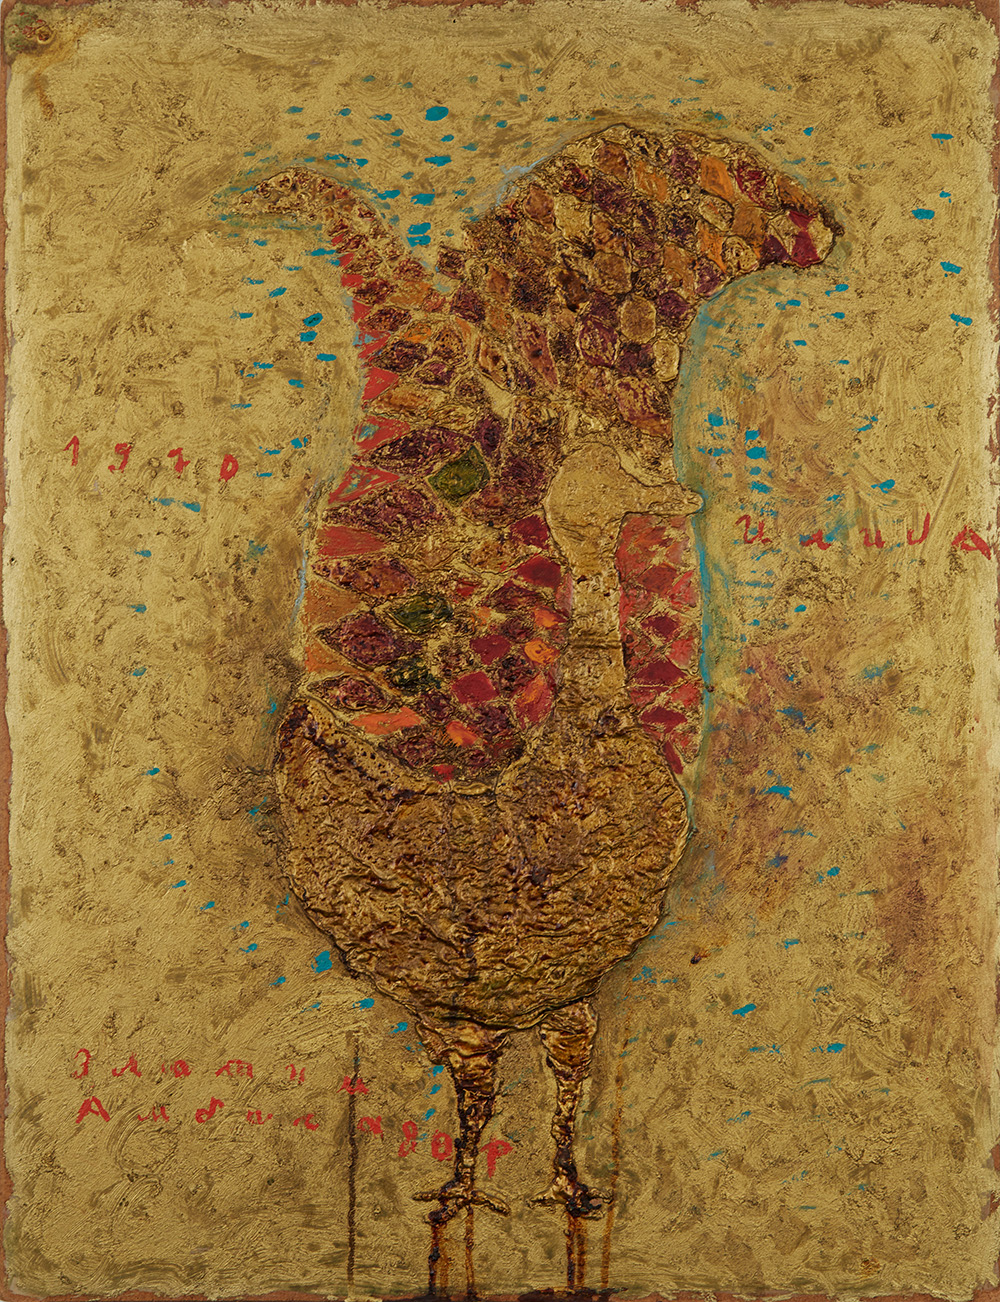 Ilija Bosilj Bašičević    Golden Ambassador  , 1970 Oil and metallic paint on board 23.25 x 18.125 inches 59.1 x 46 cm IBo 18